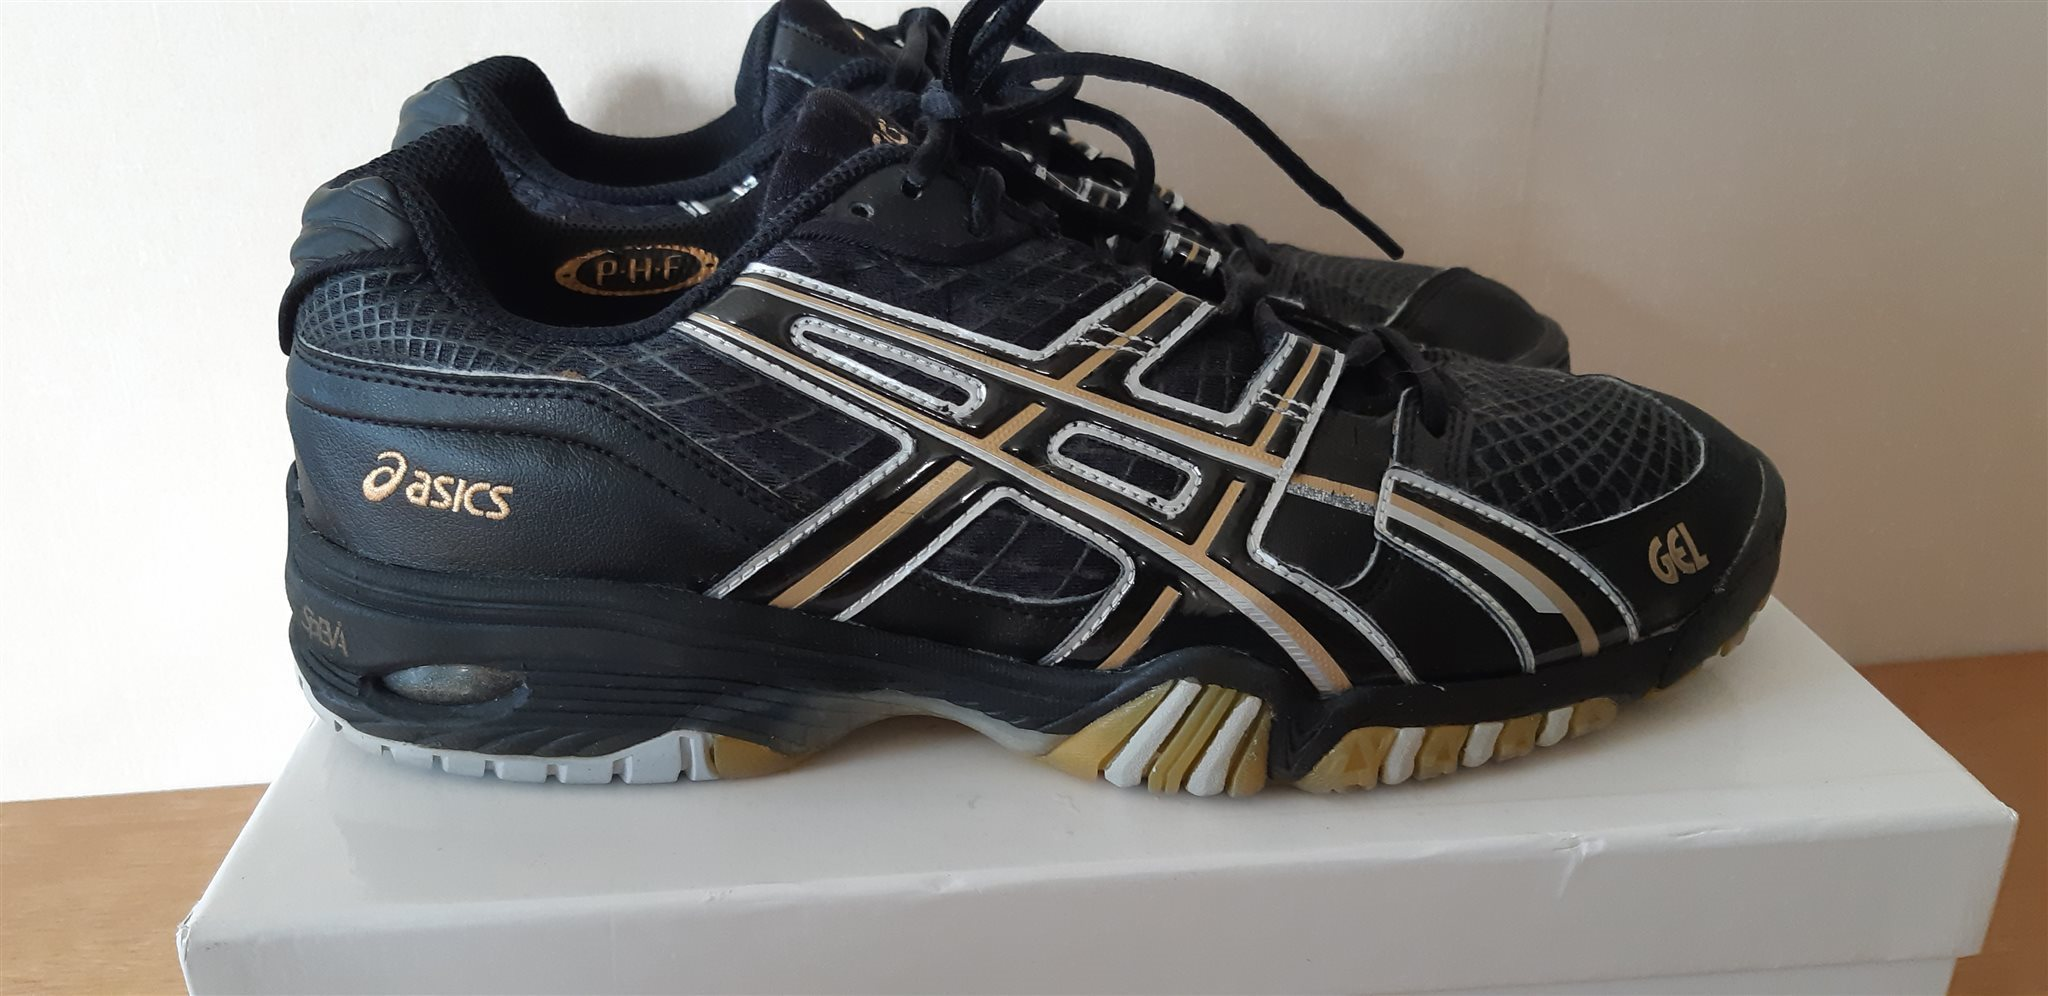 competitive price a5565 8e311 closeout nike air zoom vomero 12 e5f7d 12db8  low price coupon for asics  gel träningsskor sportskor sneakersskor strl. 44 28 96234 78e15 946ae